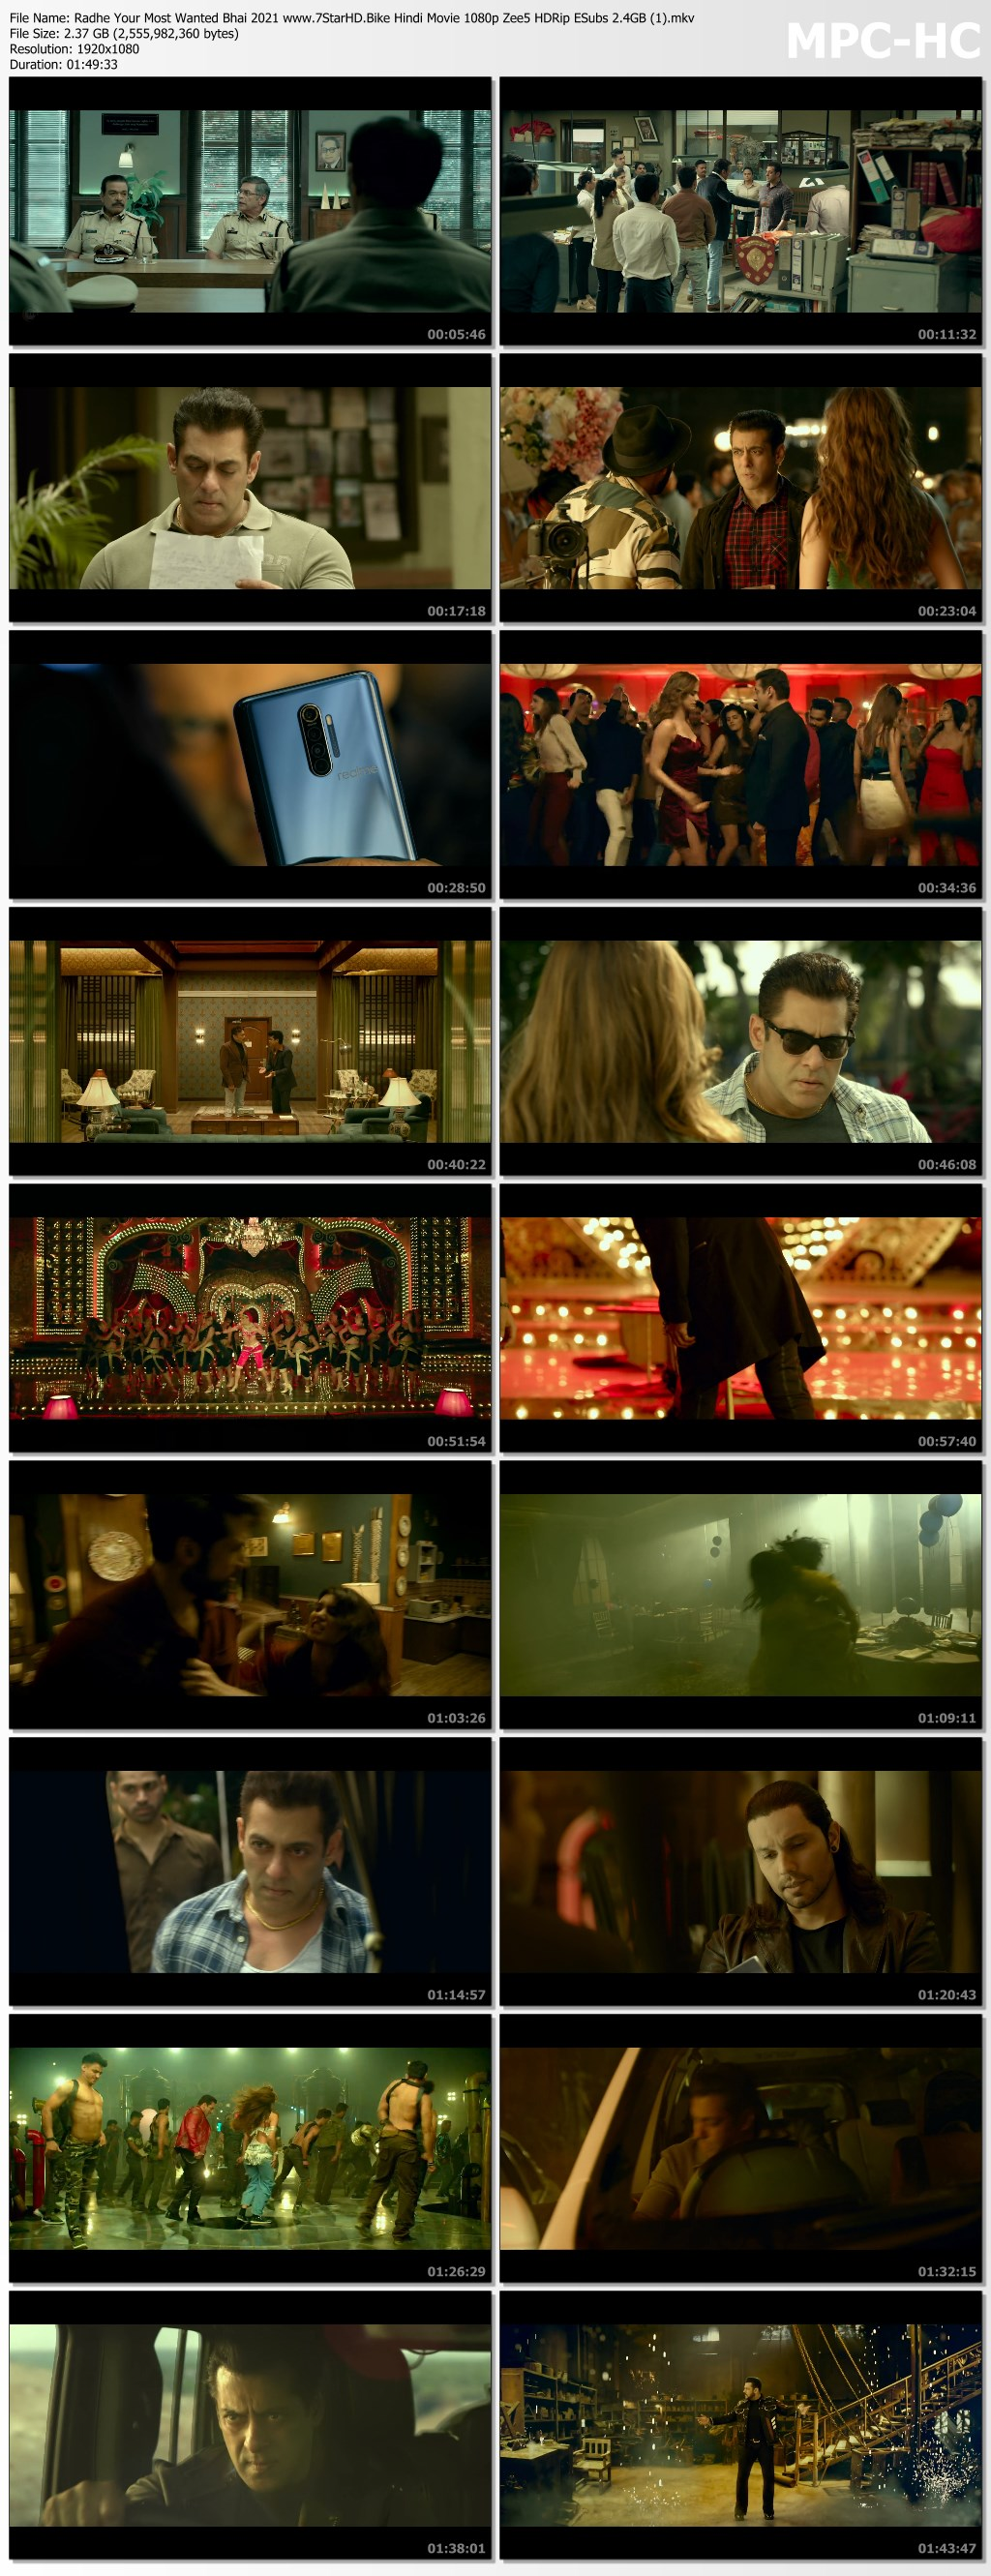 Radhe Your Most Wanted Bhai 2021 Hindi Movie 1080p Zee5 HDRip ESubs 2.4GB Download